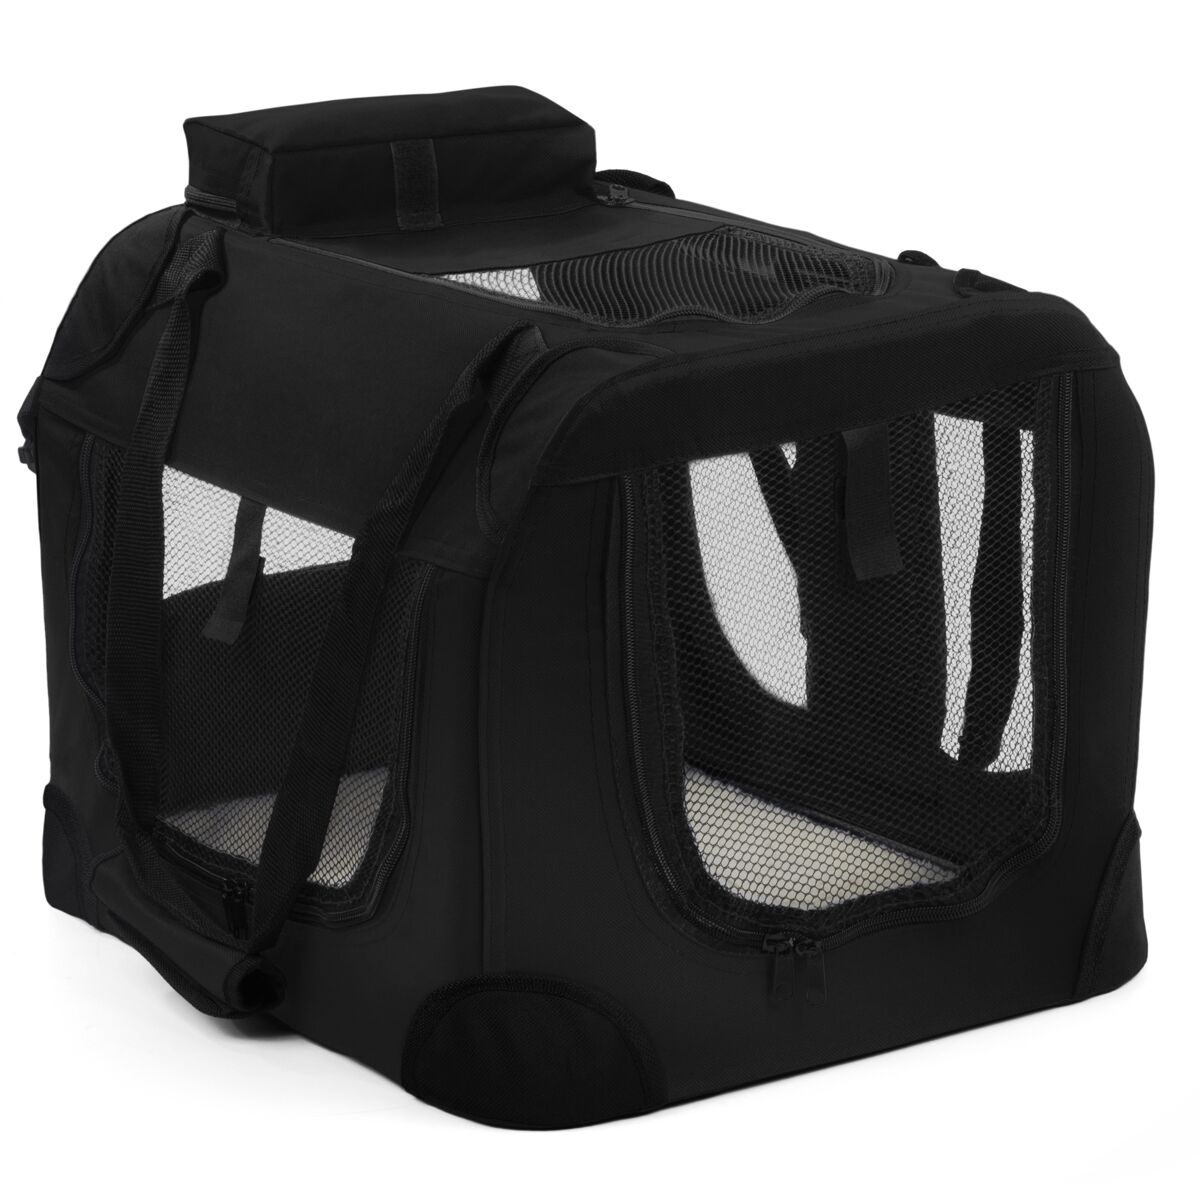 Soft-Sided Pet Carrier Size: 14